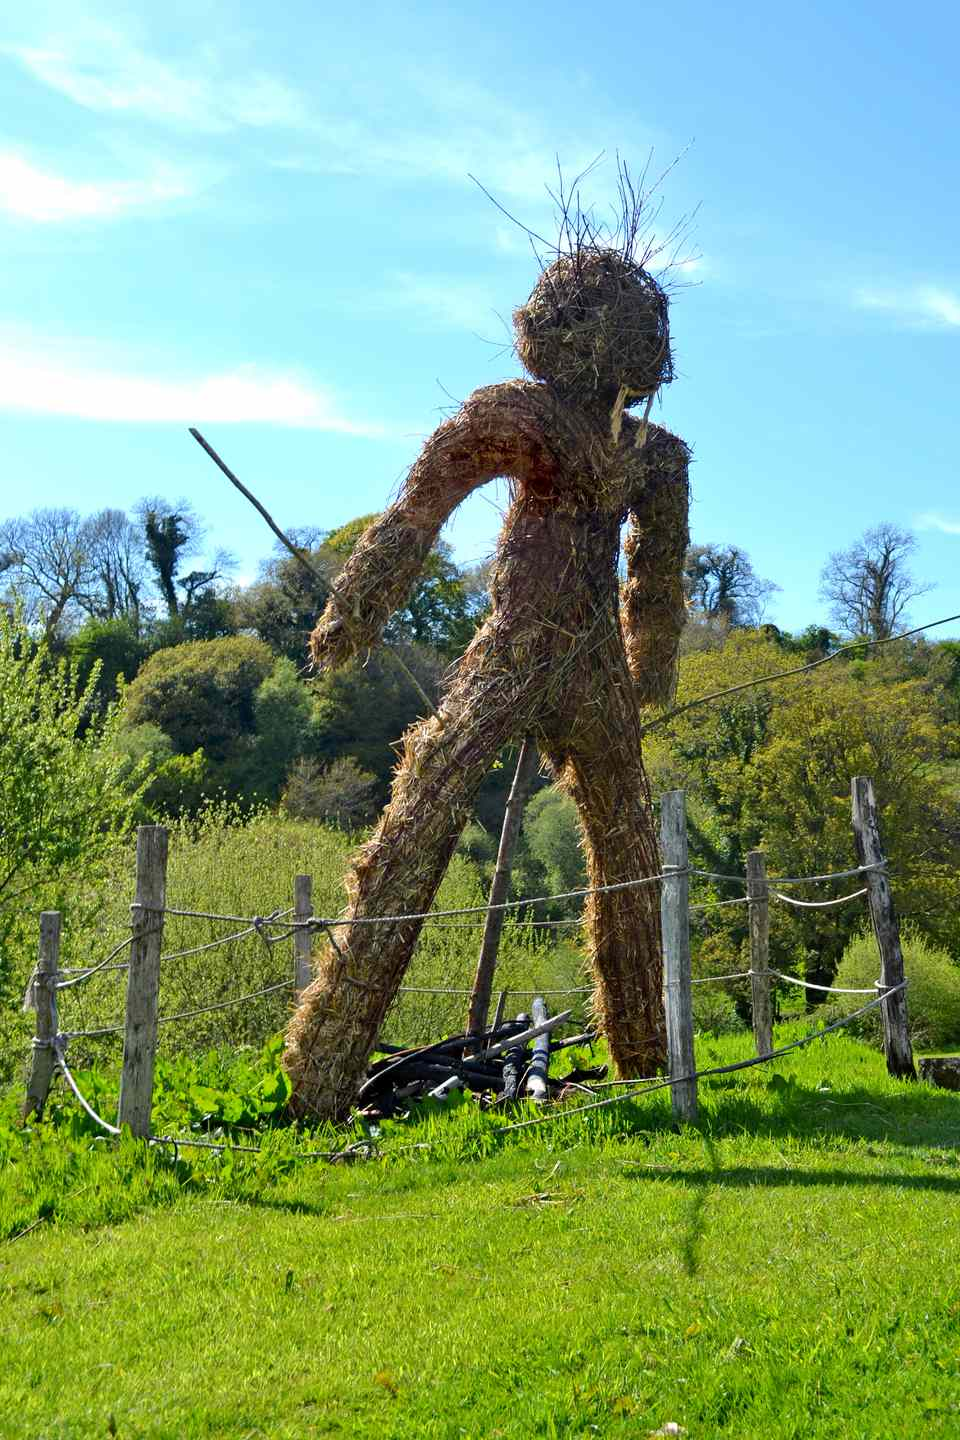 Wickerman at Castell Henllys